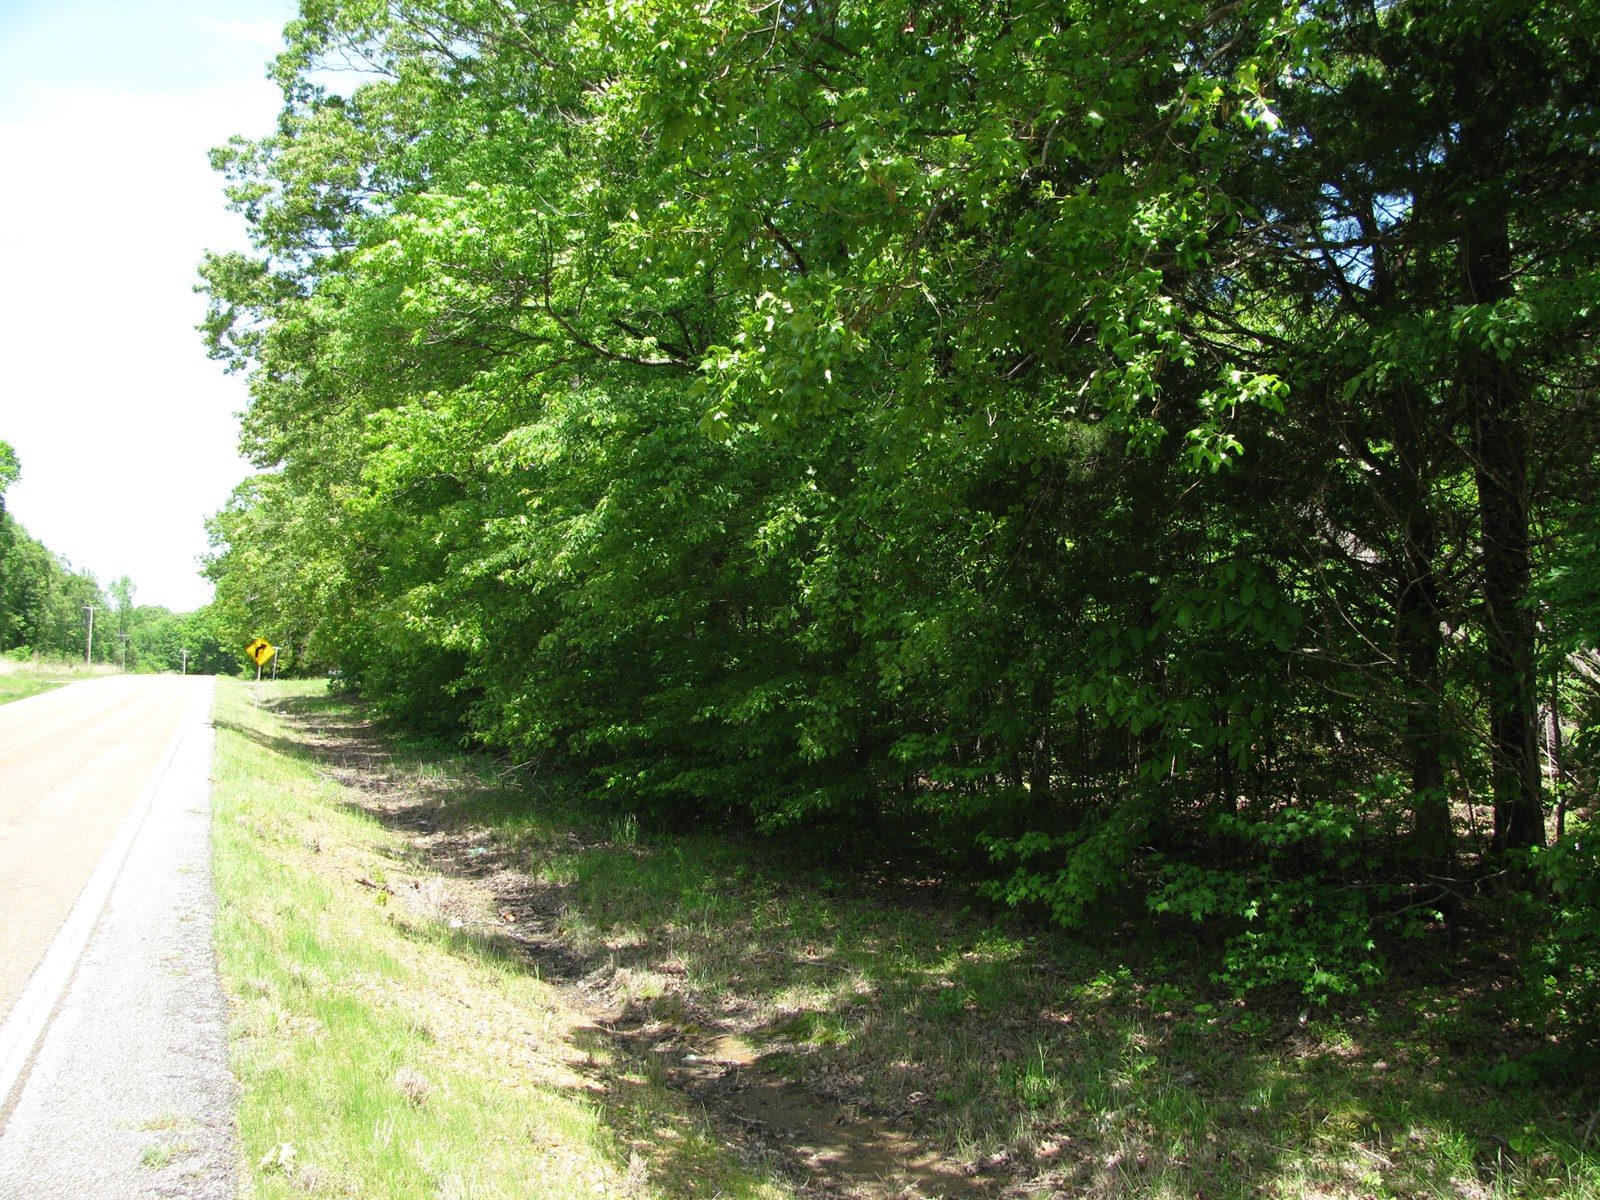 UNRESTRICTED LAND FOR SALE IN TENNESSEE, WOODED, PRIVATE